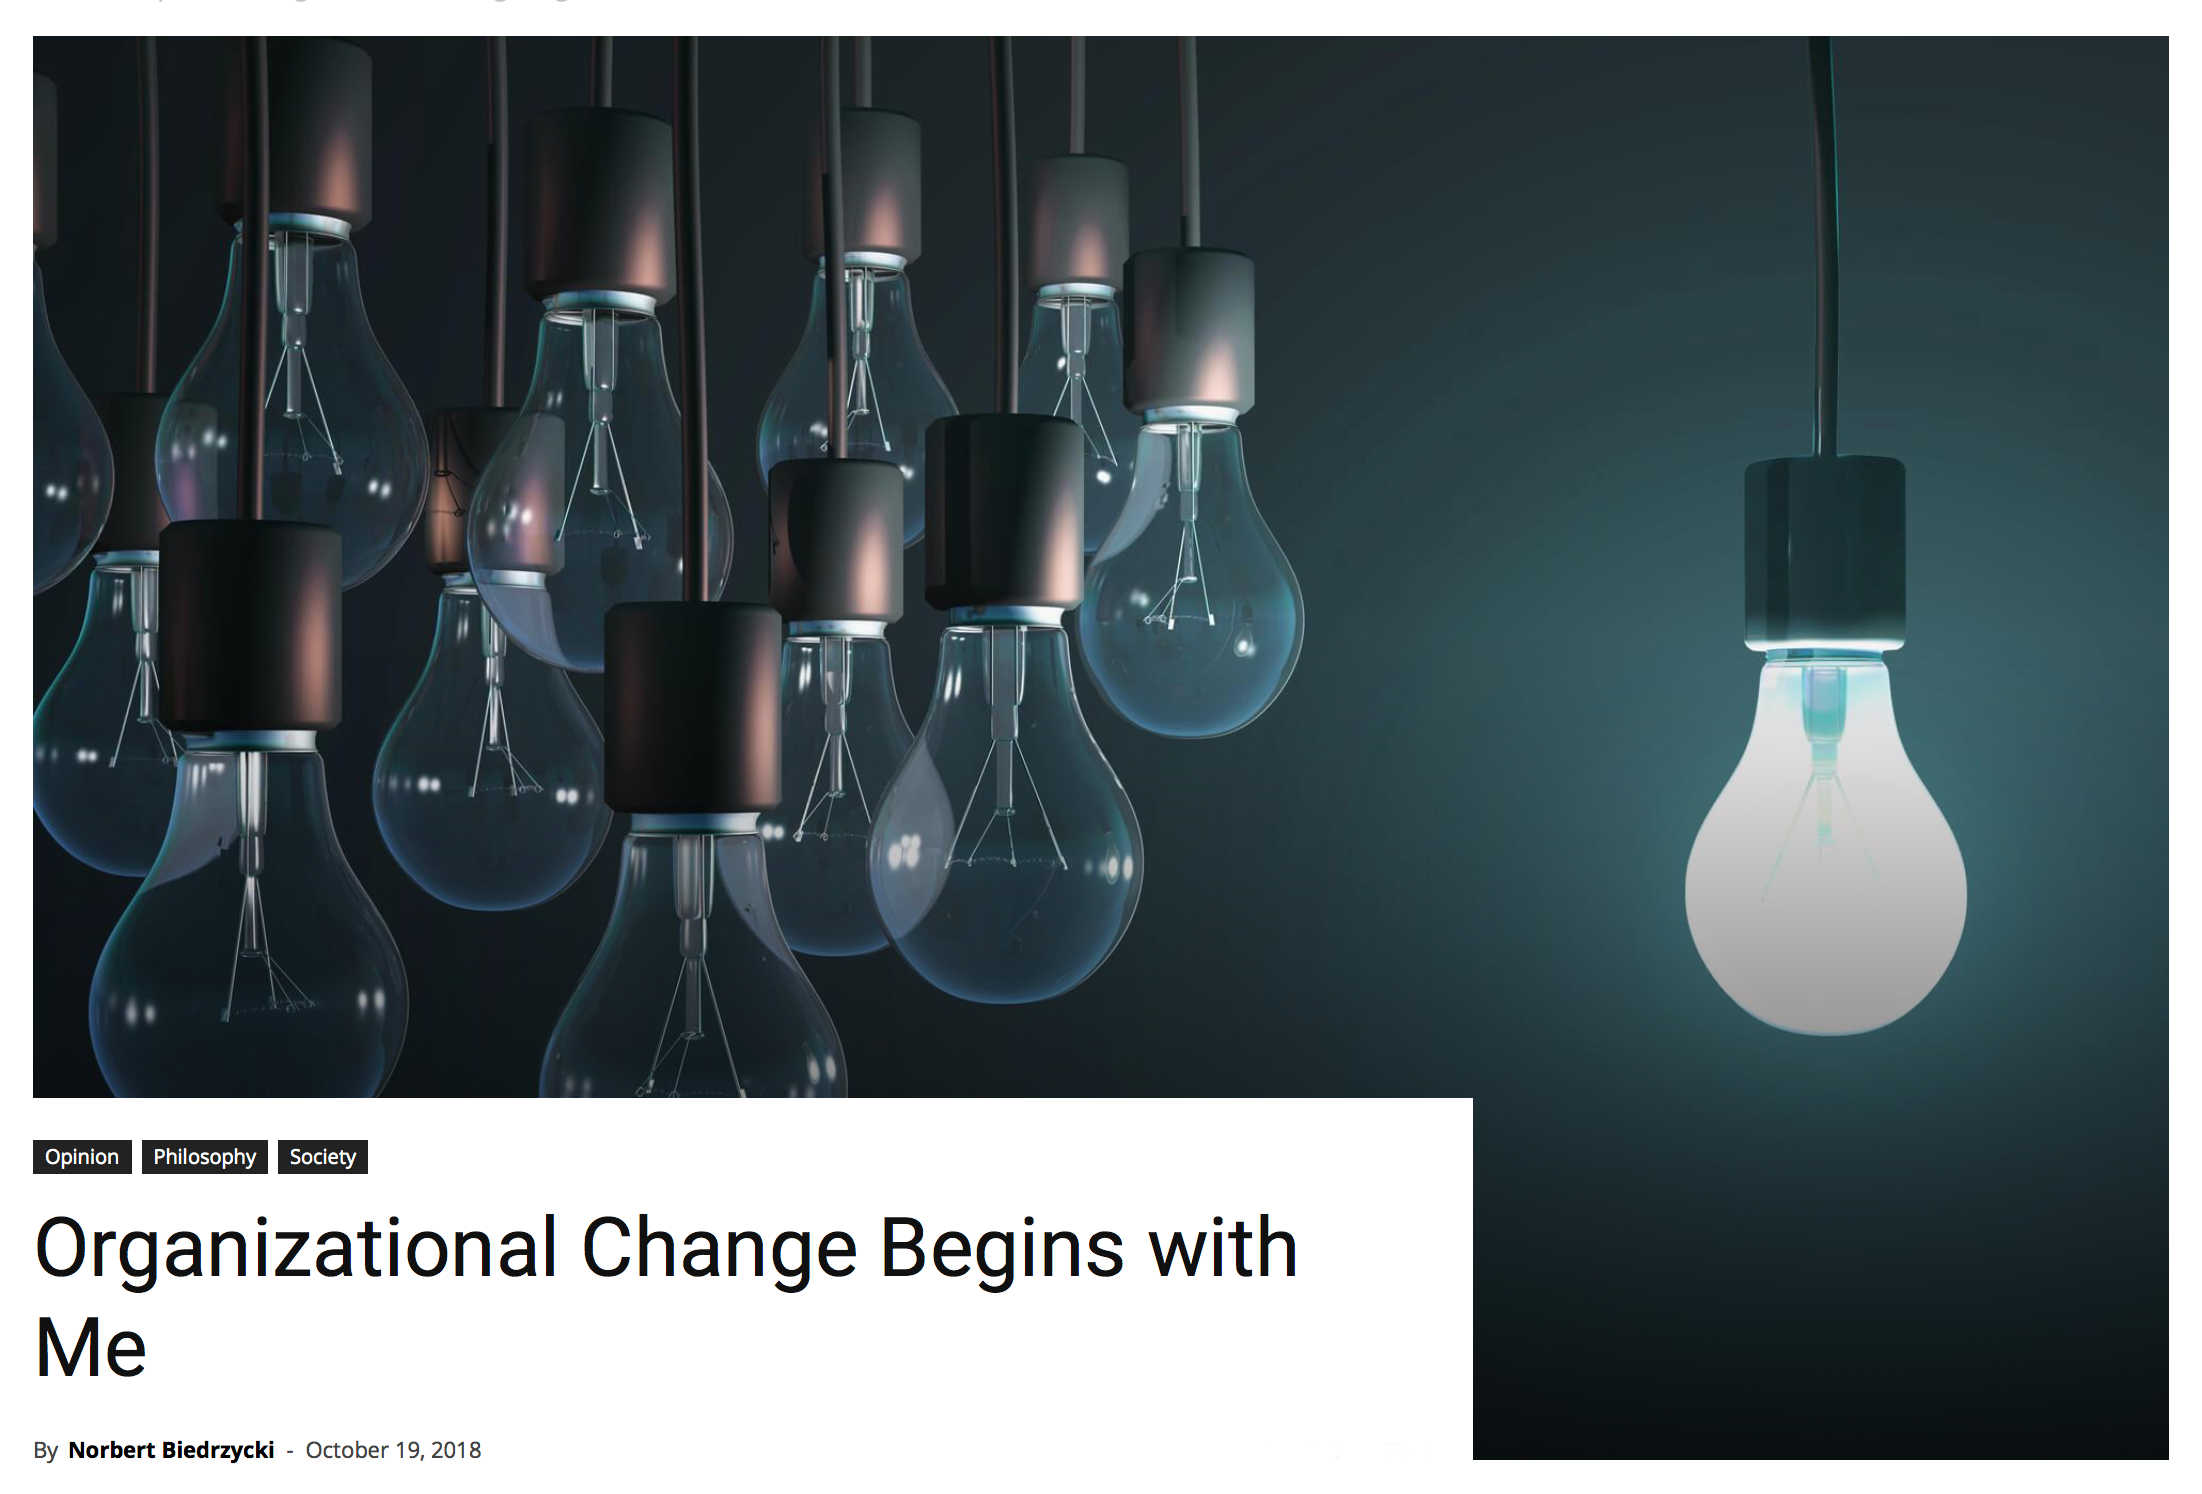 Organizational change starts with me Norbert Biedrzycki